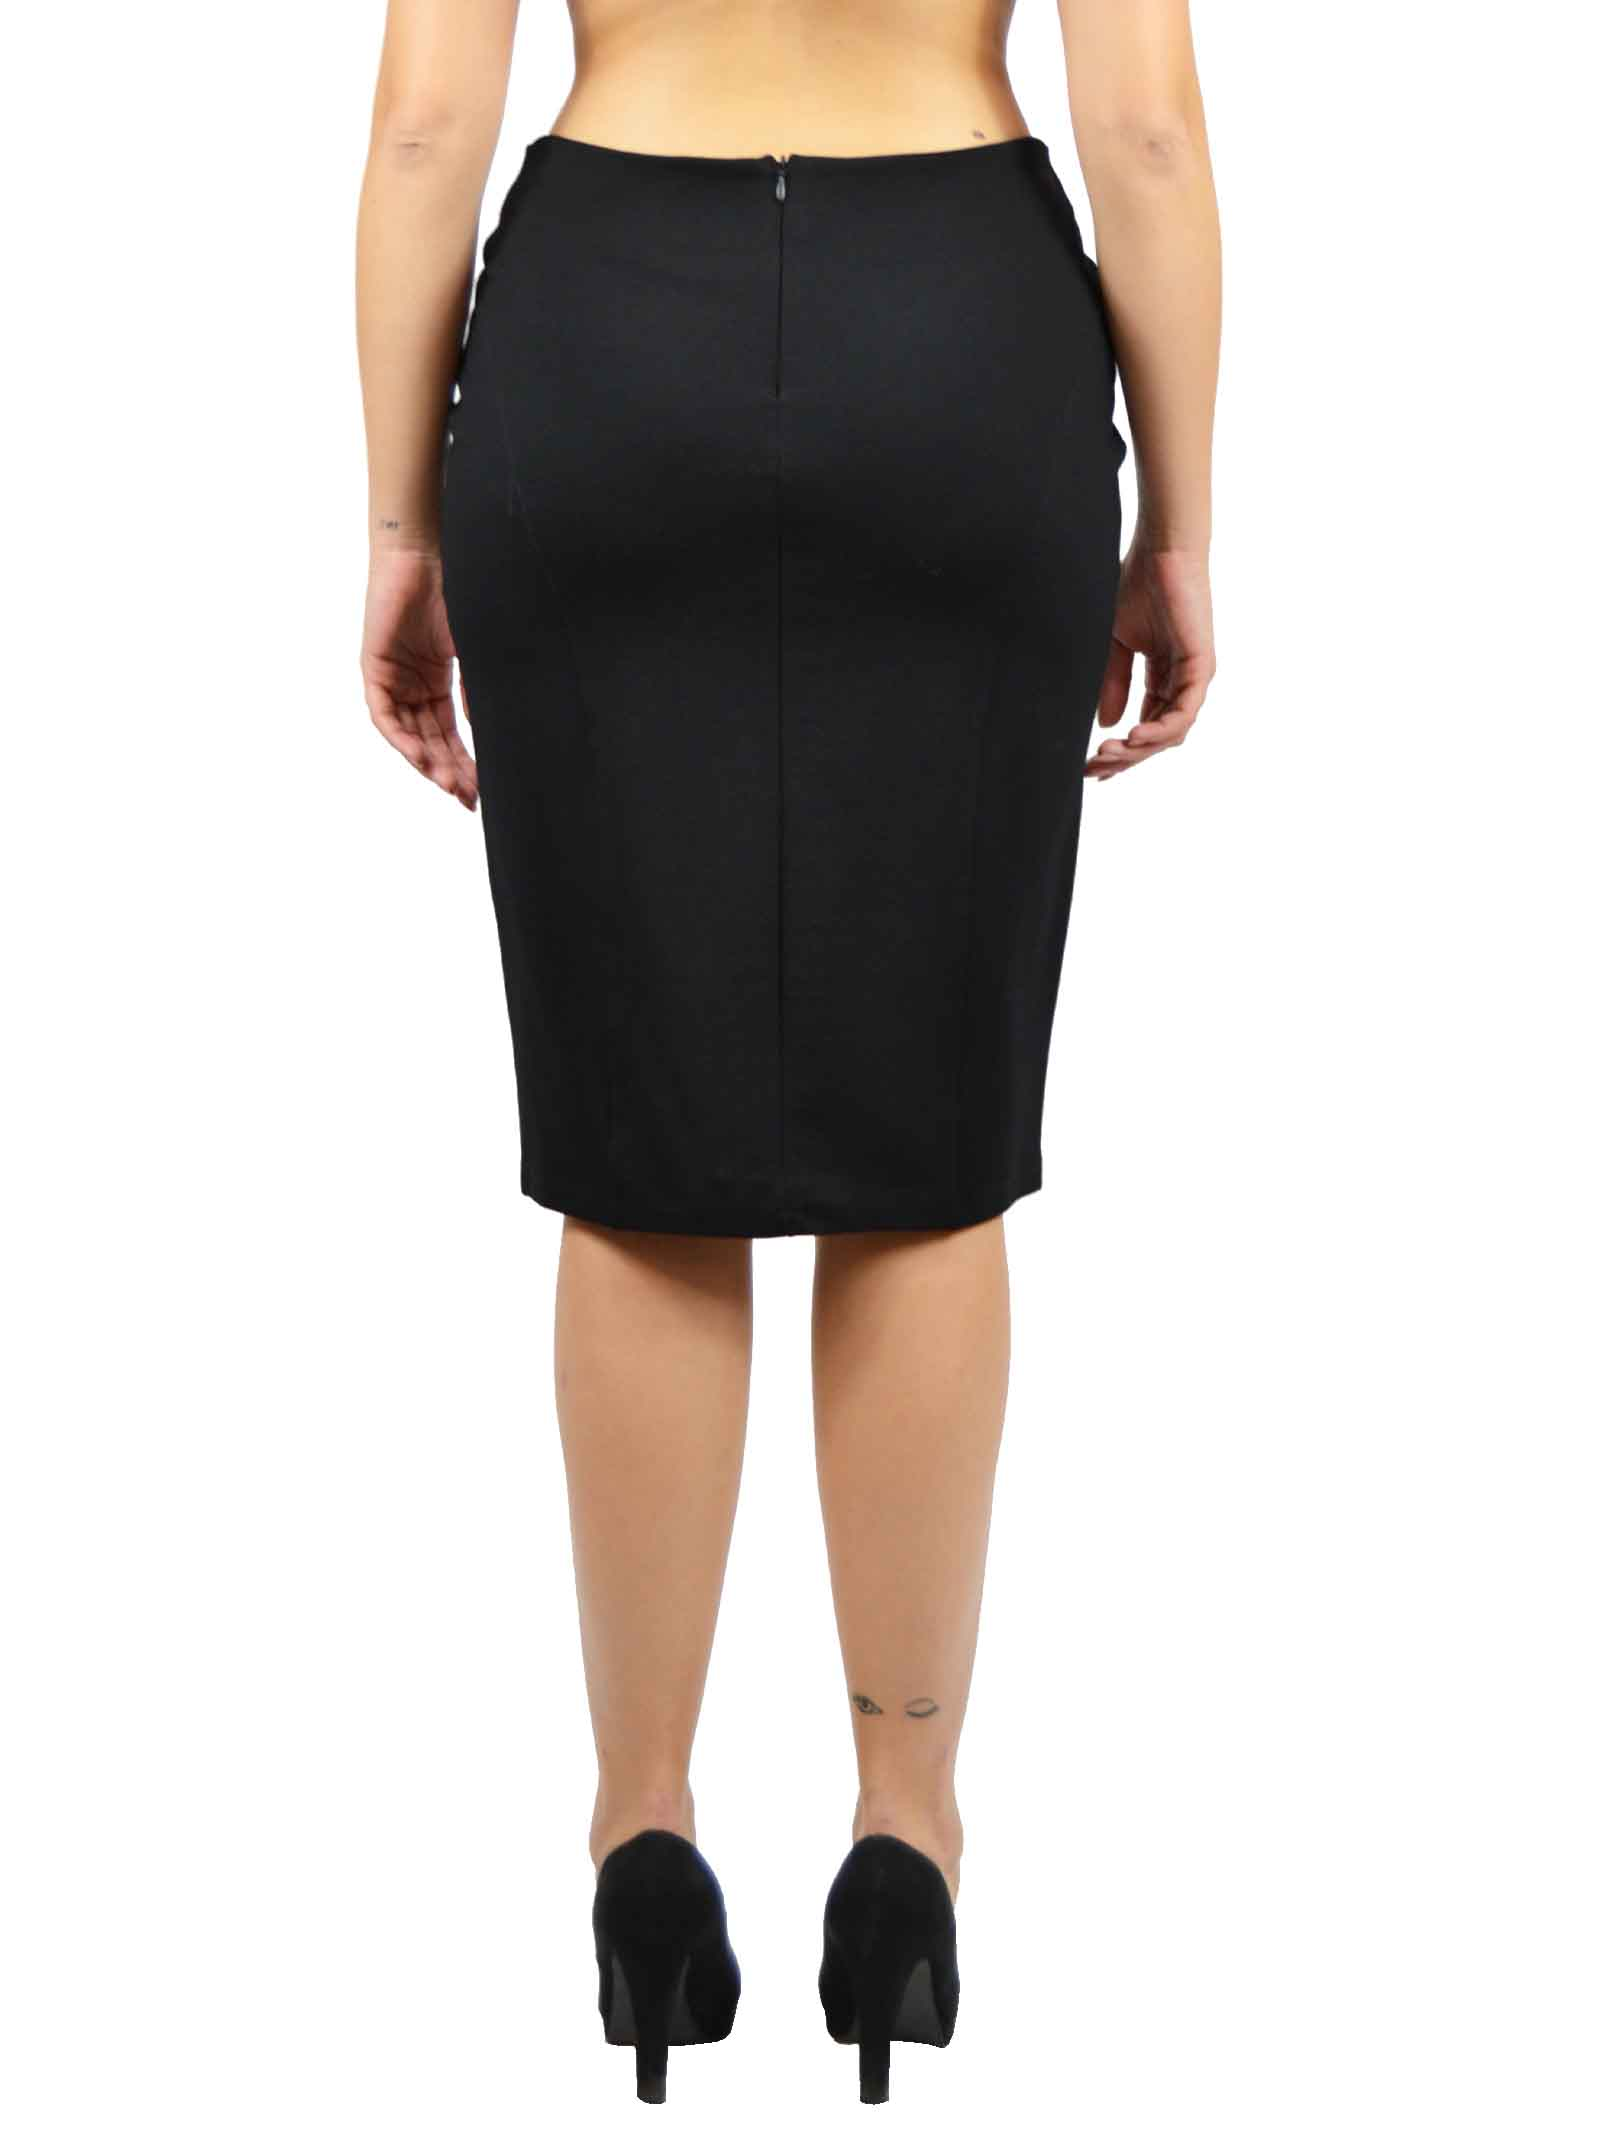 Tight sheat Skirt in Milano stitch fabric MEALYS |  | CY-G32503